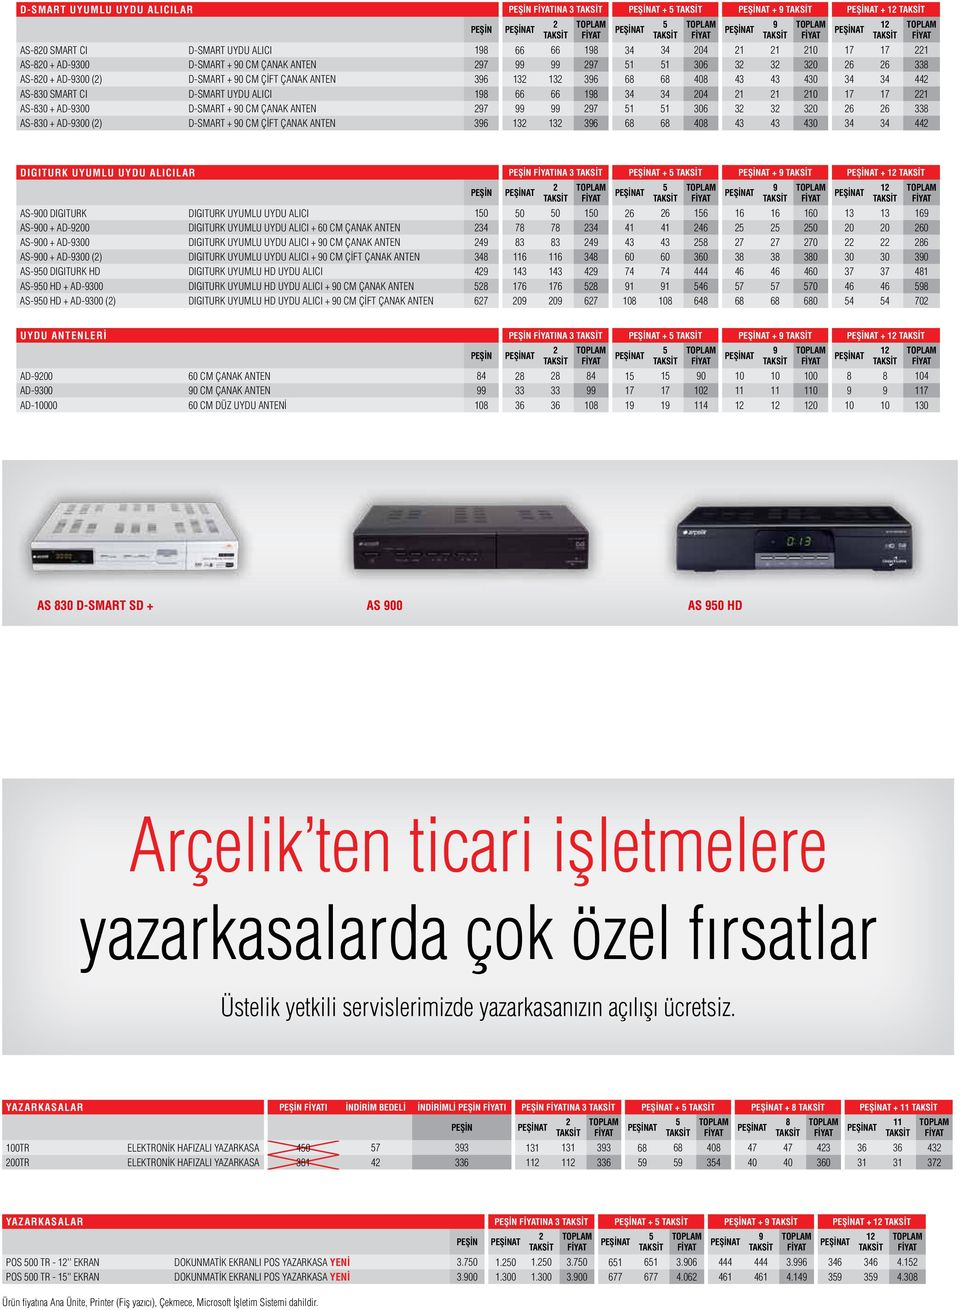 ANTEN 97 99 99 97 1 1 306 3 3 30 6 6 338 AS-830 + AD-9300 () D-SMART + 90 CM ÇİFT ÇANAK ANTEN 396 13 13 396 68 68 408 43 43 430 34 34 44 9 1 DIGITURK UYUMLU UYDU ALICILAR INA 3 + + 9 + 1 AS-900